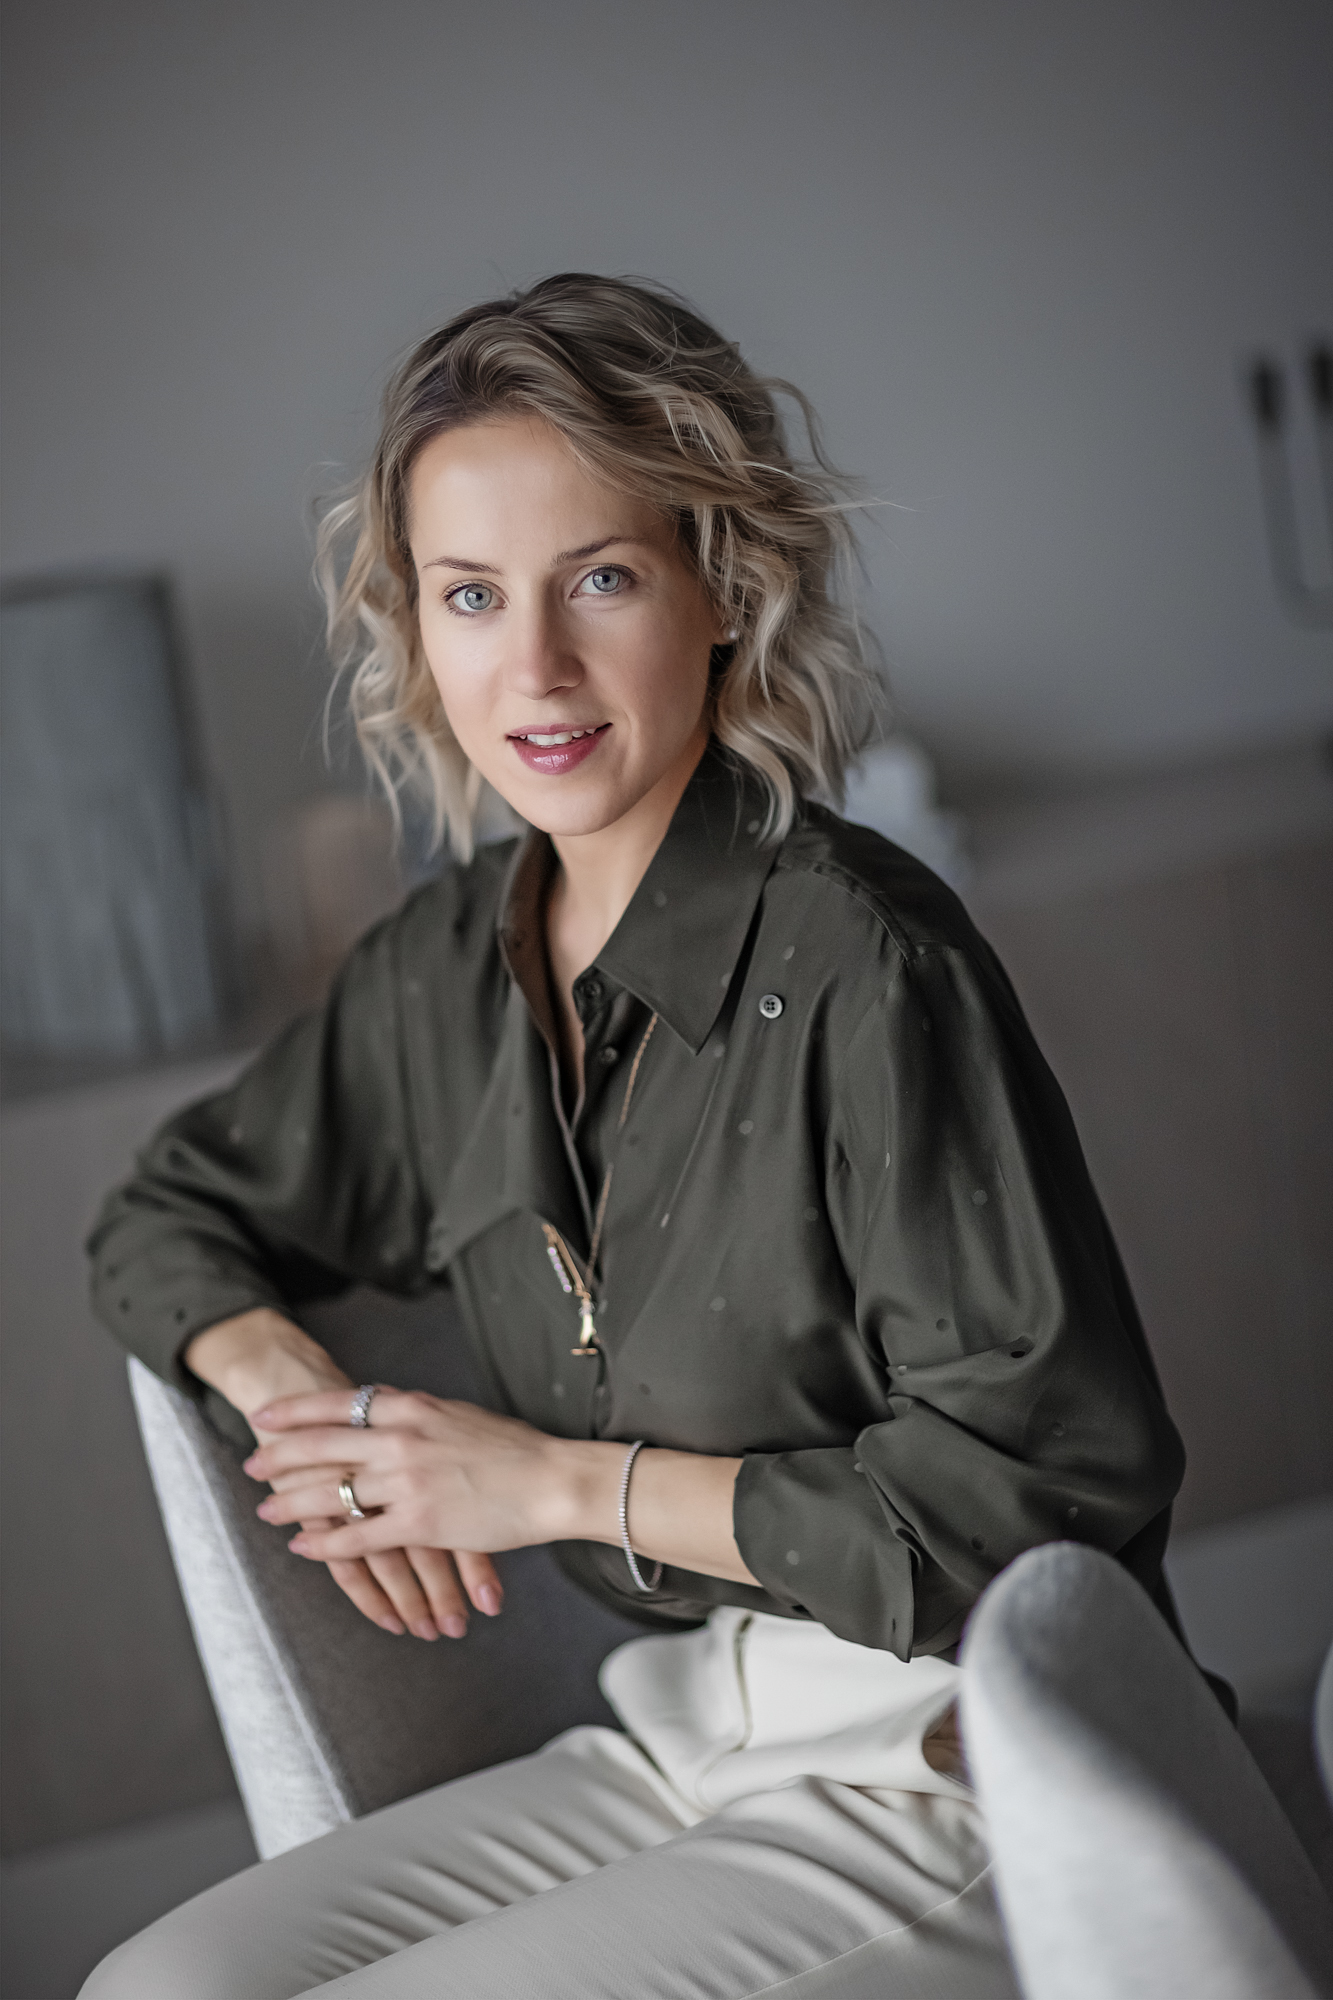 zz Interior Designer and architect maria Duborkina